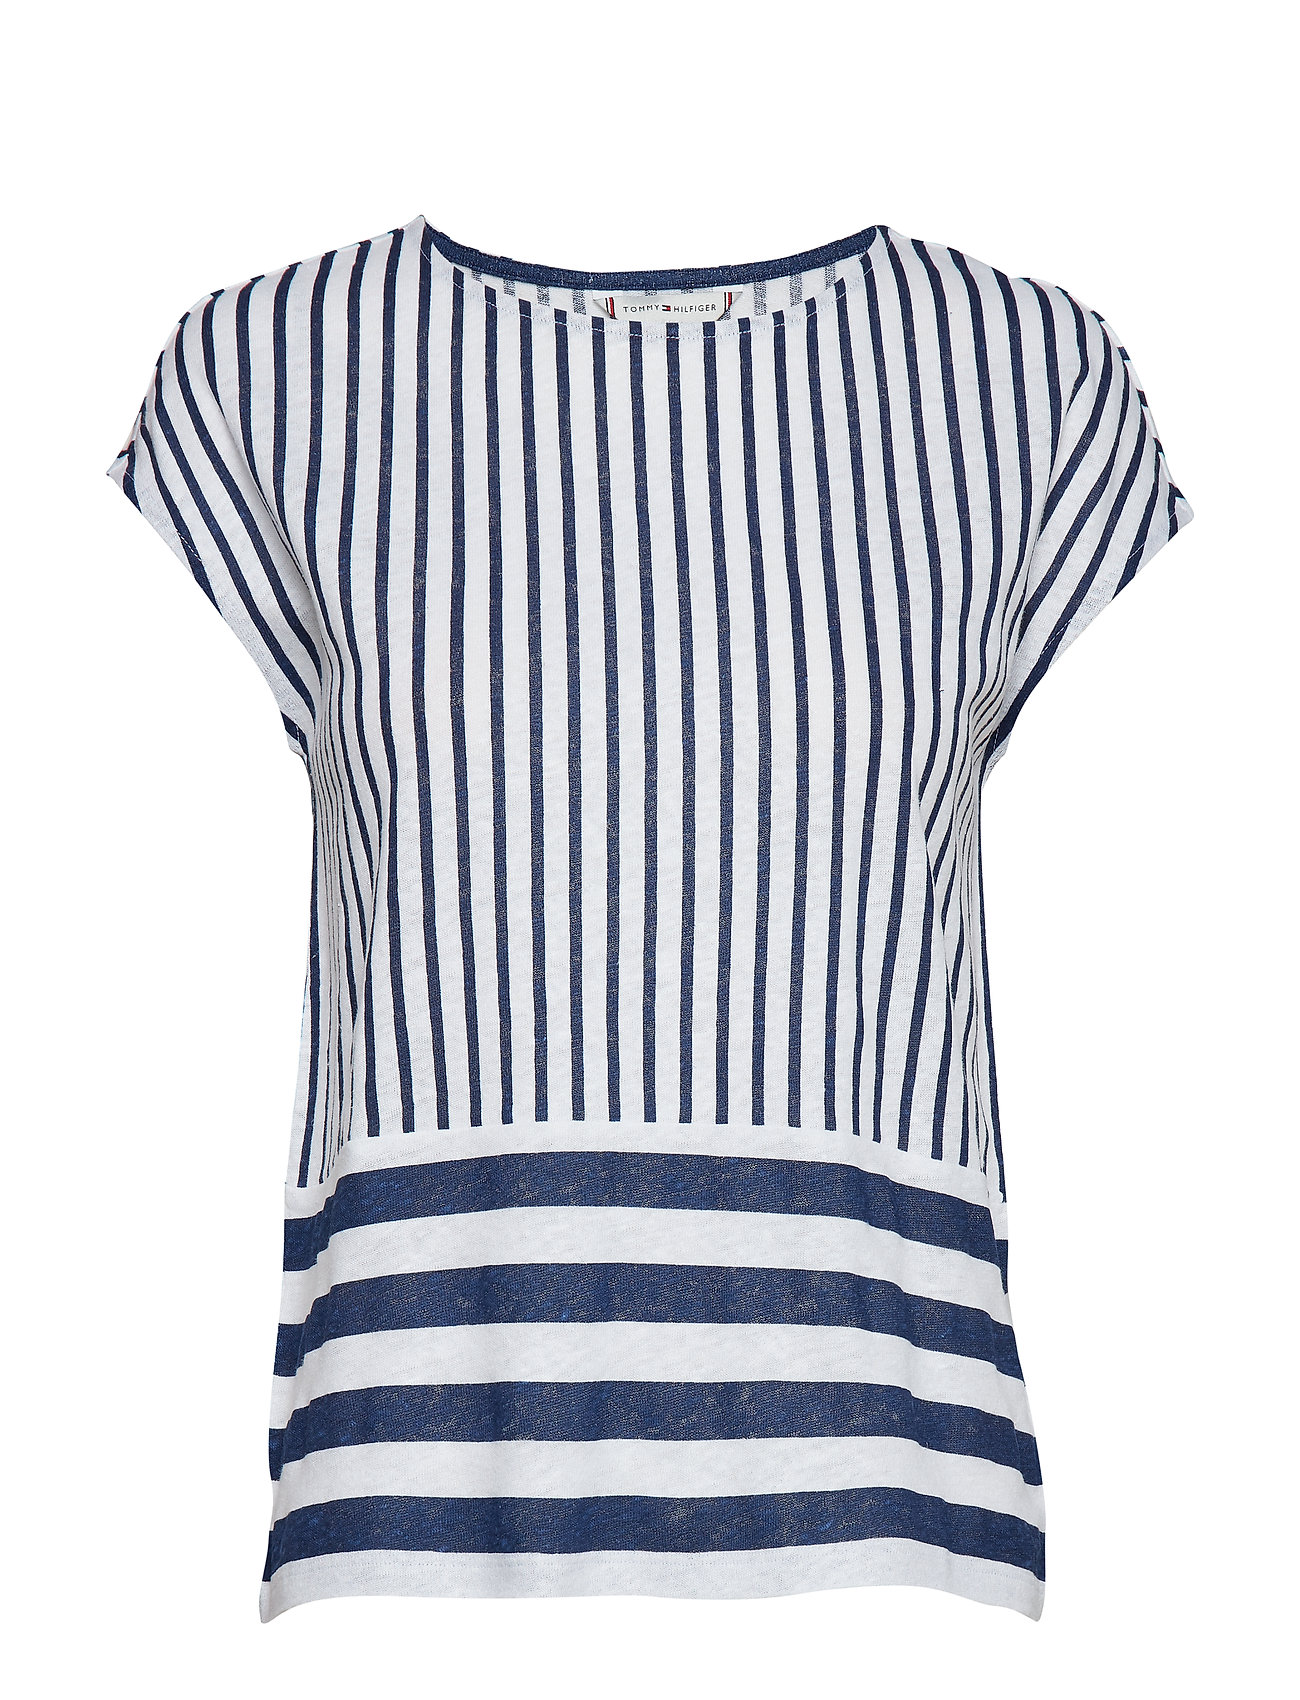 Tommy Hilfiger BABS OPEN-NK TOP CAP - DECK CHAIR STP YD / MEDIEVAL